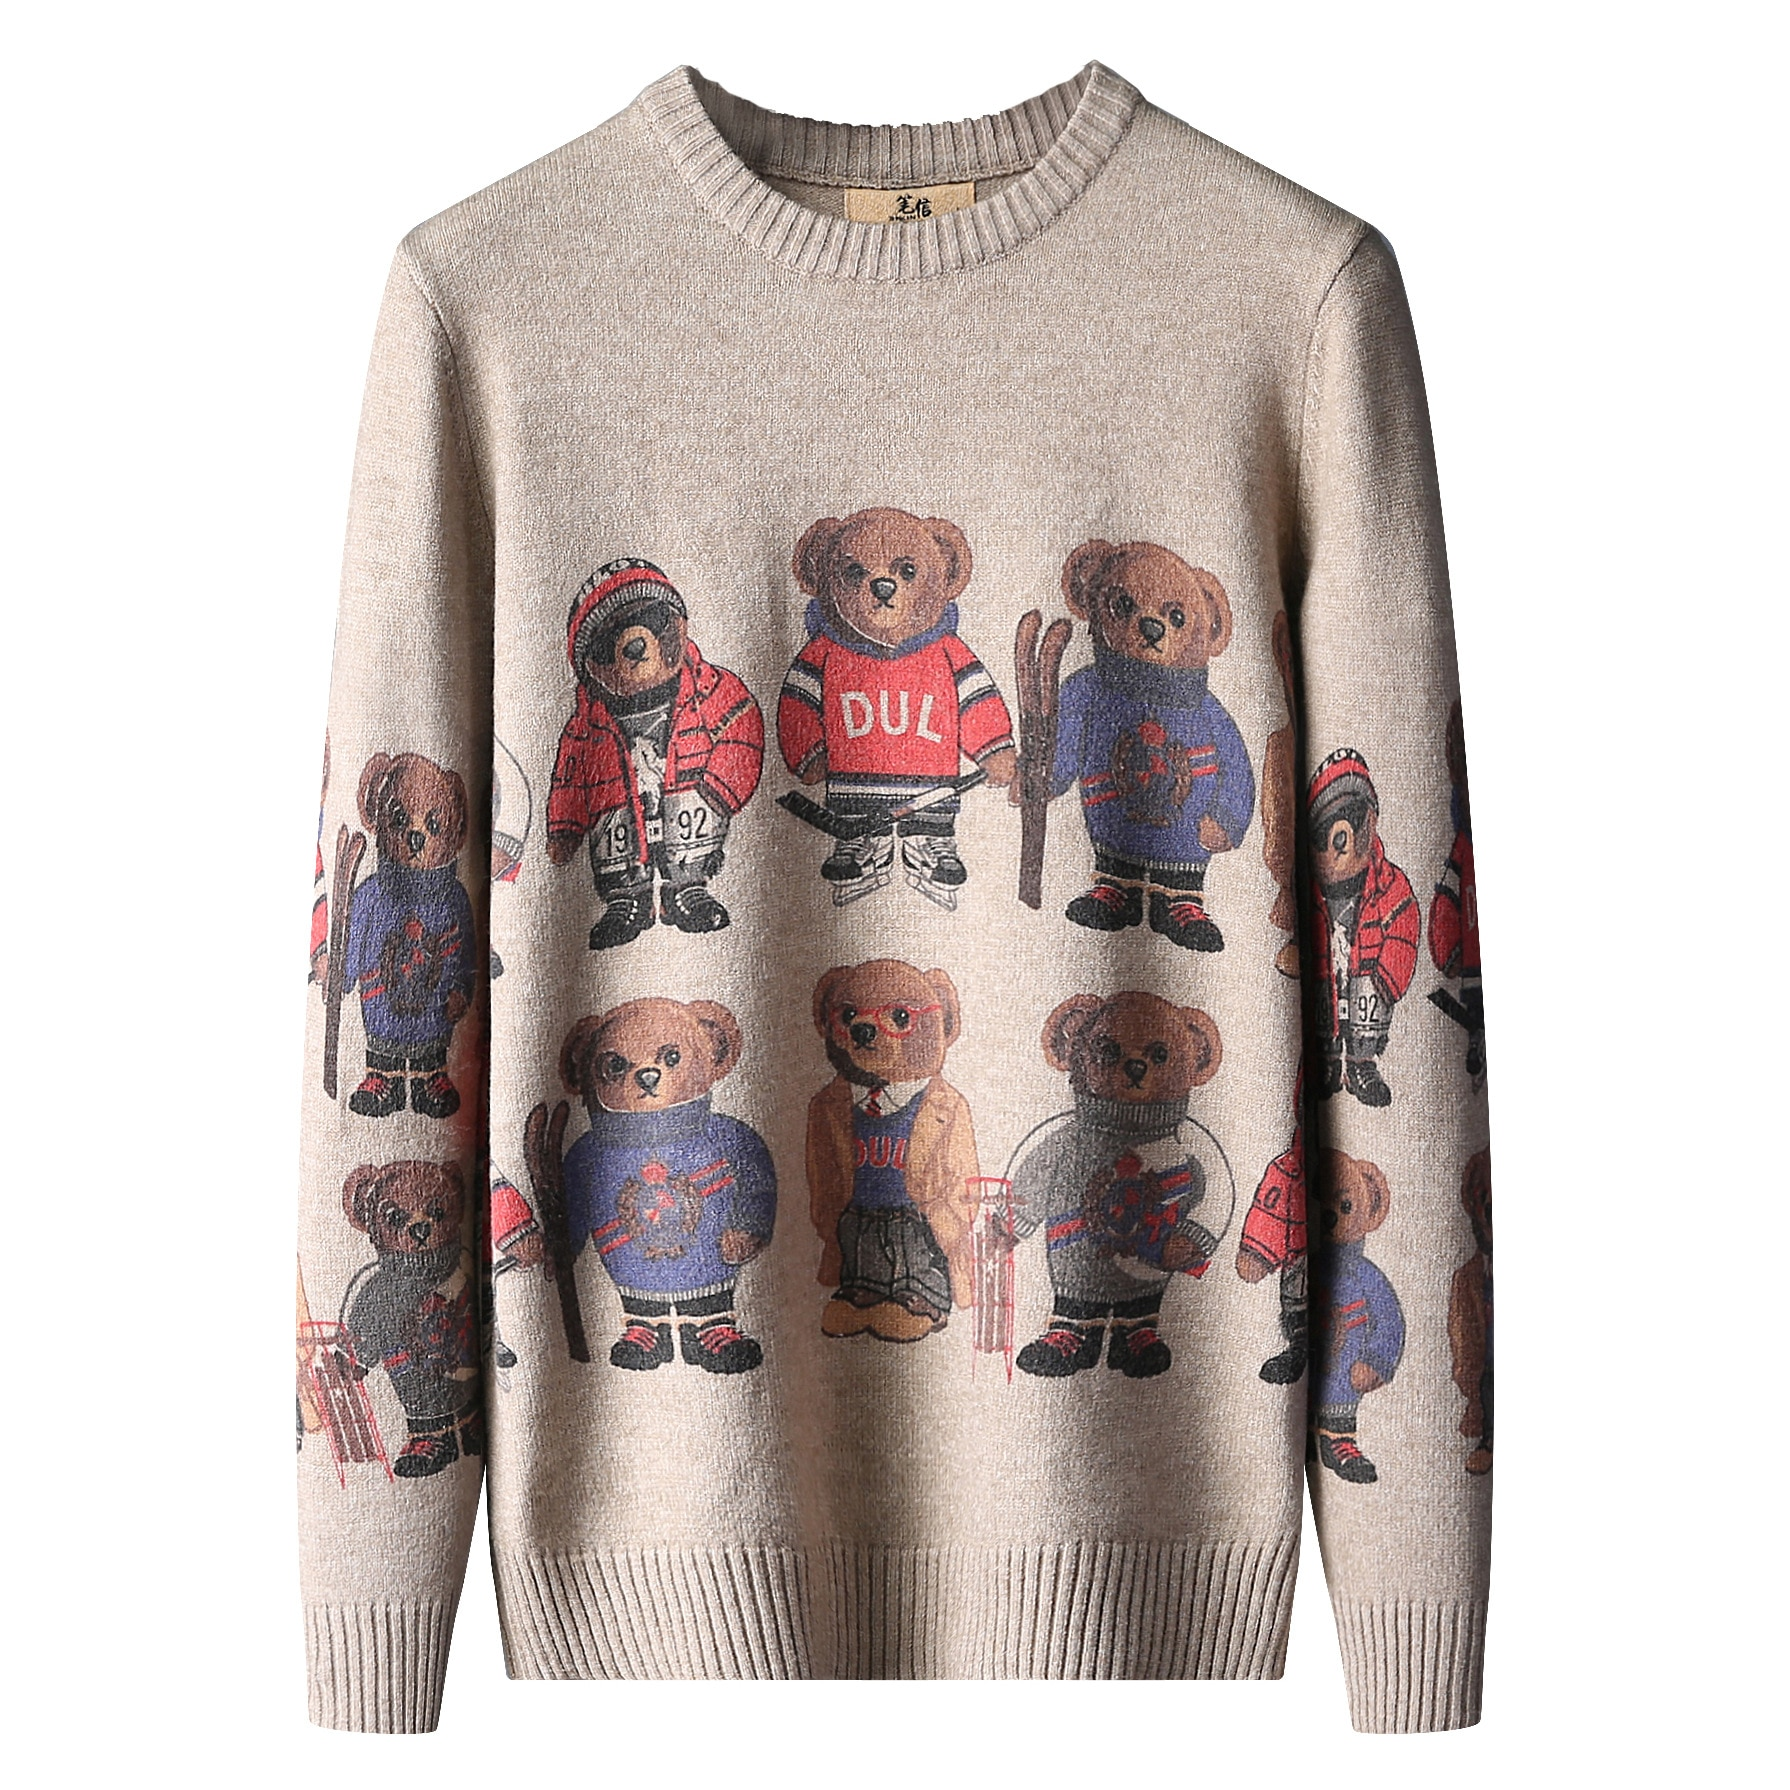 New Autumn Winter Cashmere Warm Sweater Men Bear Print Mens Slim Fit Sweaters Tops Knitted Men's Christmas Jumper